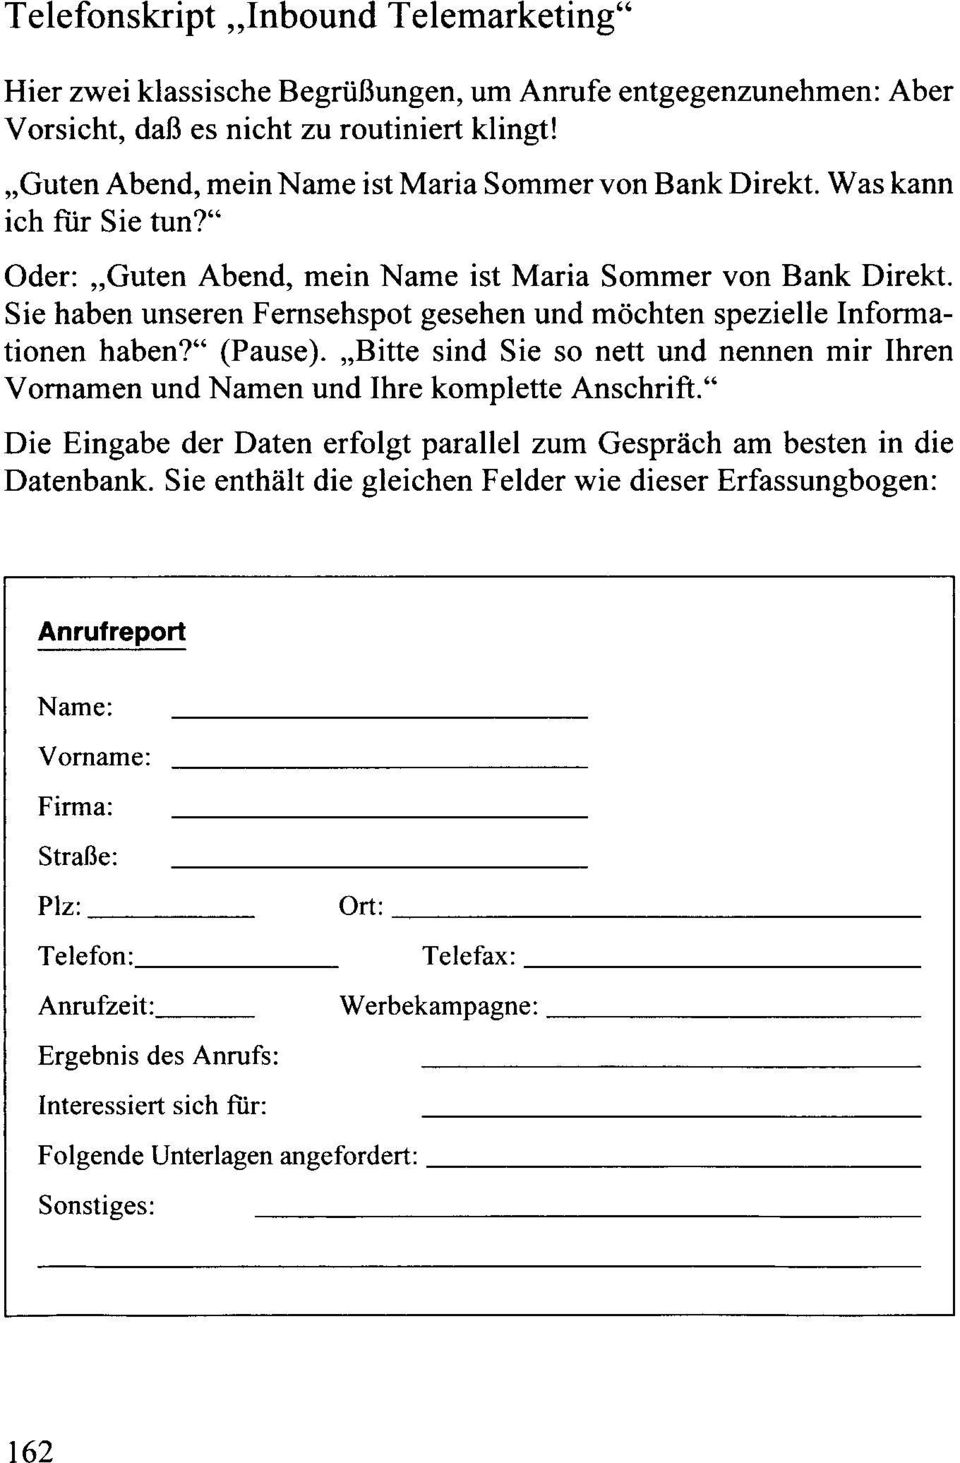 Berühmt Telefonscript Vorlage Bilder - Entry Level Resume Vorlagen ...